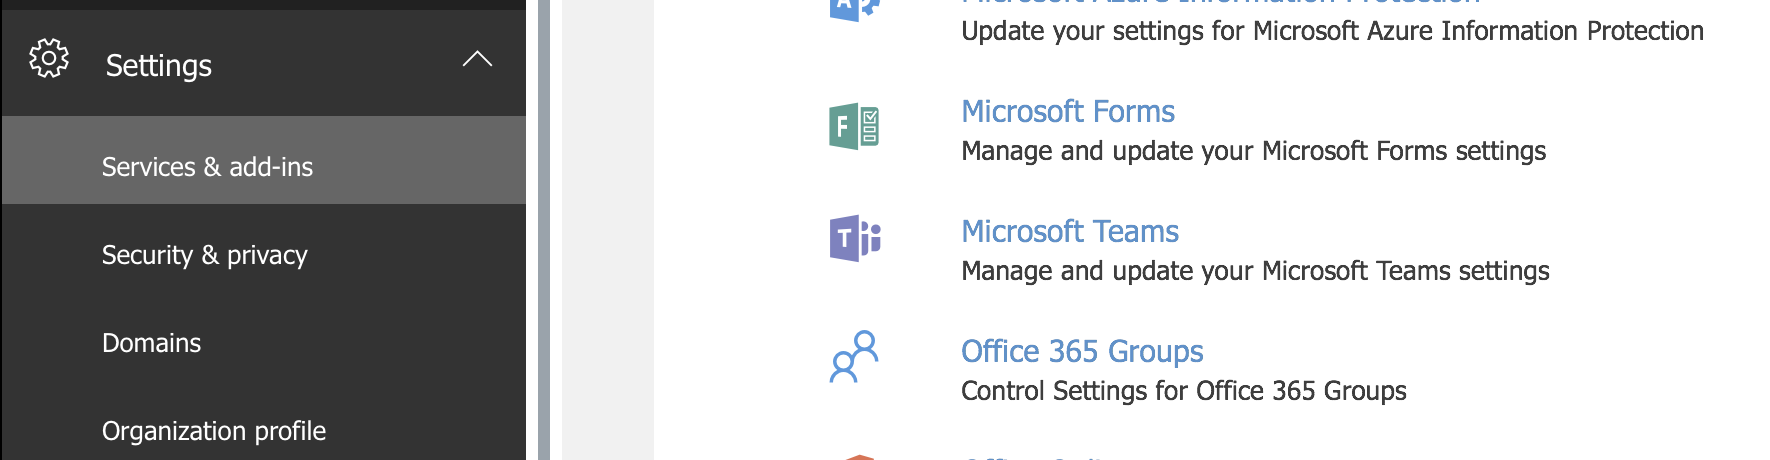 Enable Guest Access for Office 365 Groups Step 1